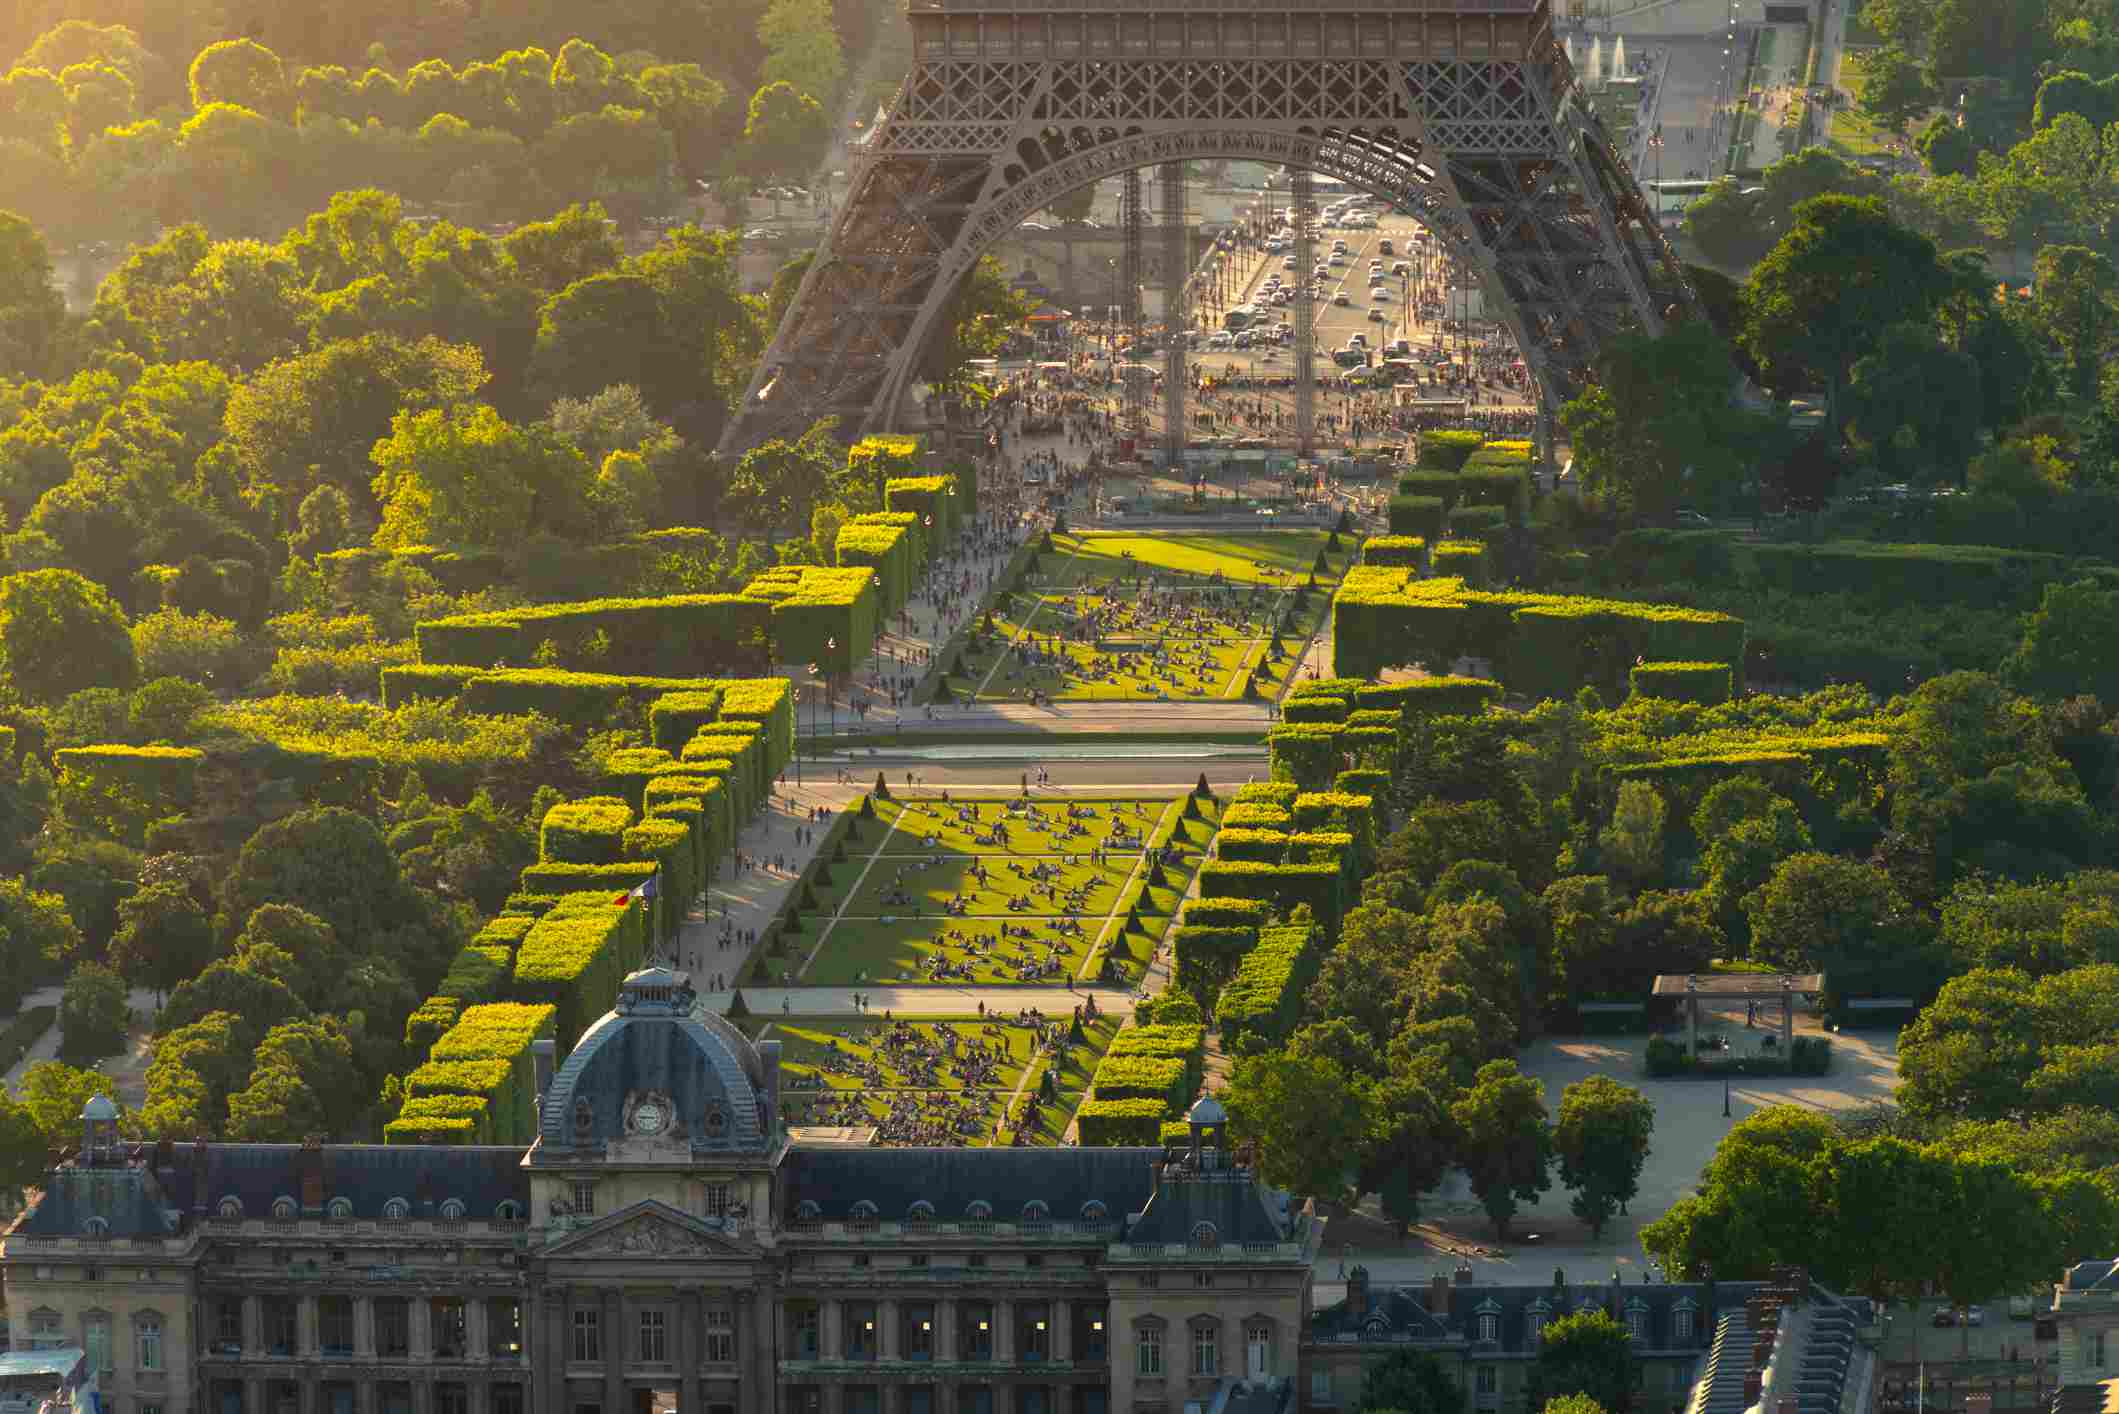 The lawns at the Champ de Mars are ideal for a picnic.